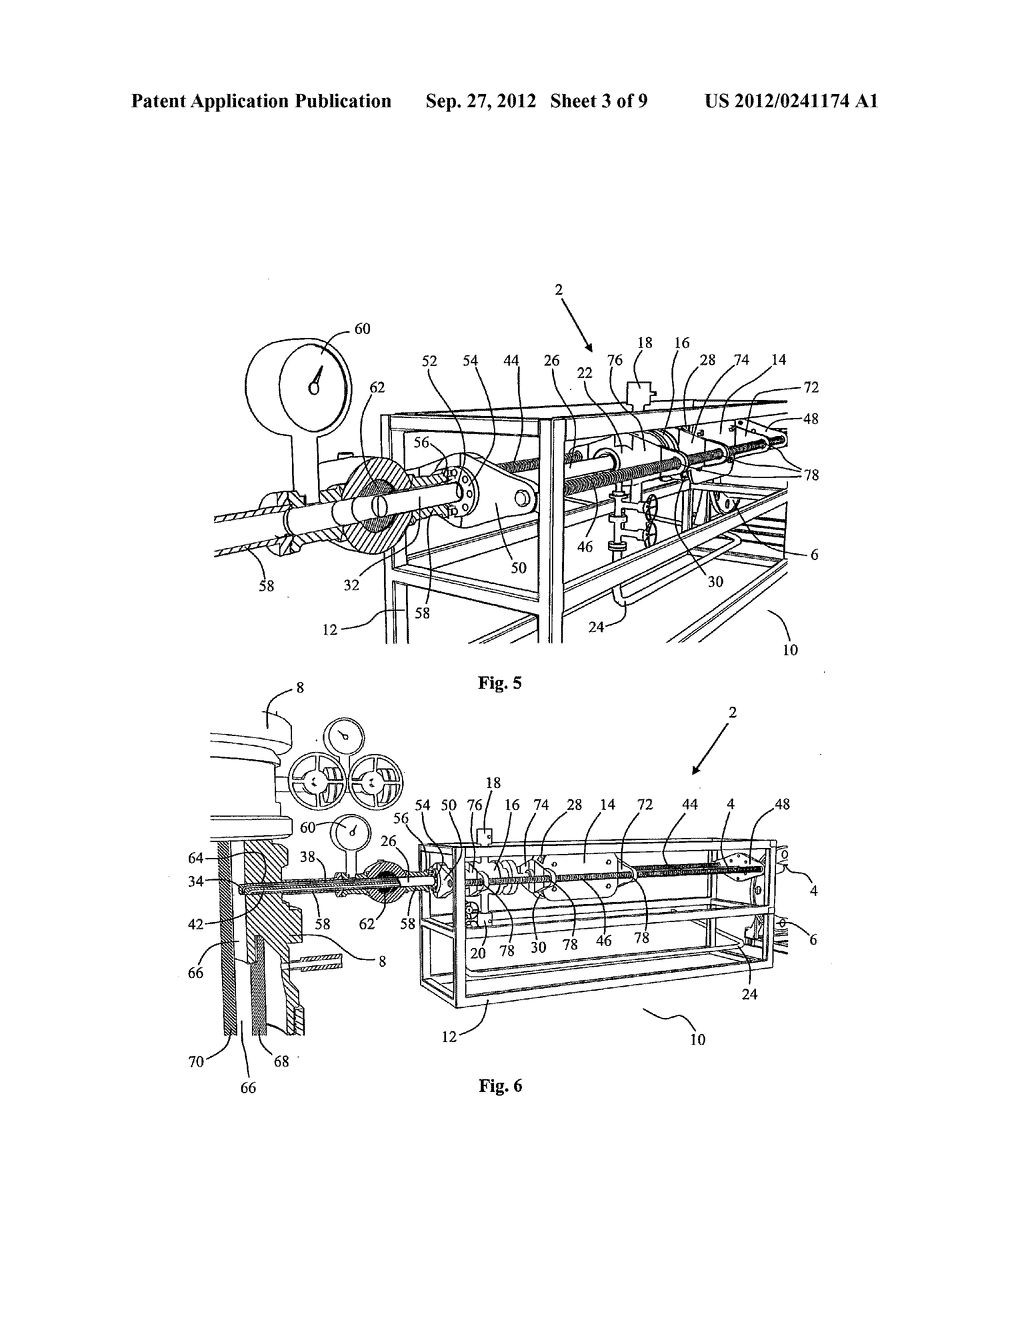 INJECTION MODULE, METHOD FOR USE FOR LATERAL INSERTION AND BENDING OF A     COILED TUBING VIA A SIDE OPENING IN A WELL - diagram, schematic, and image 04